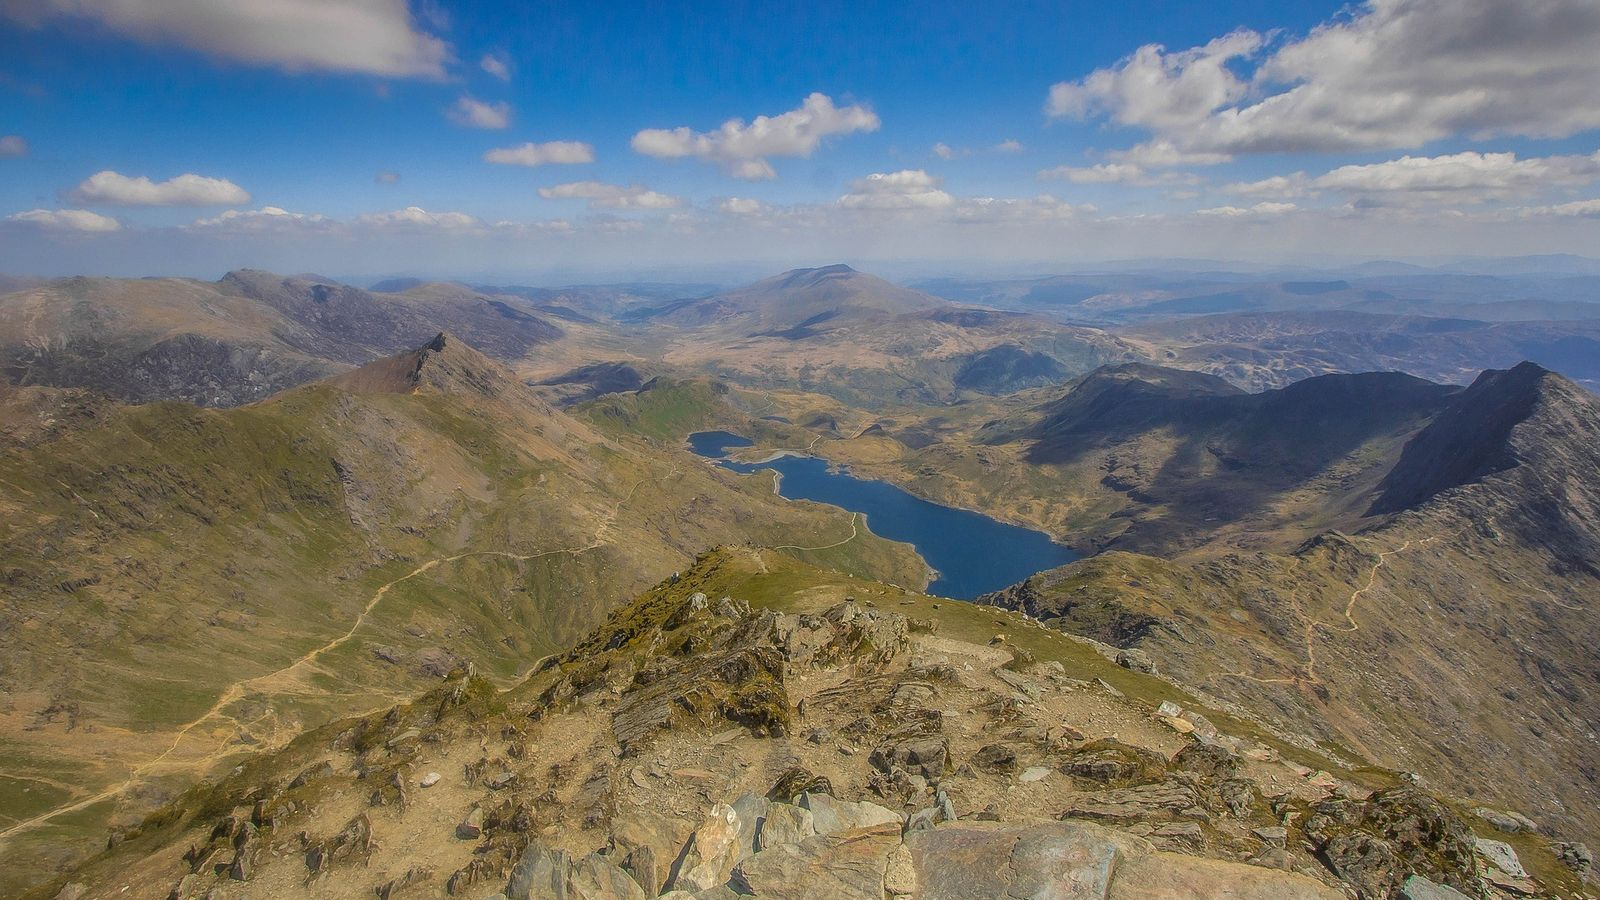 Snowdonia is the tallest mountain in Wales and affords remarkable views.